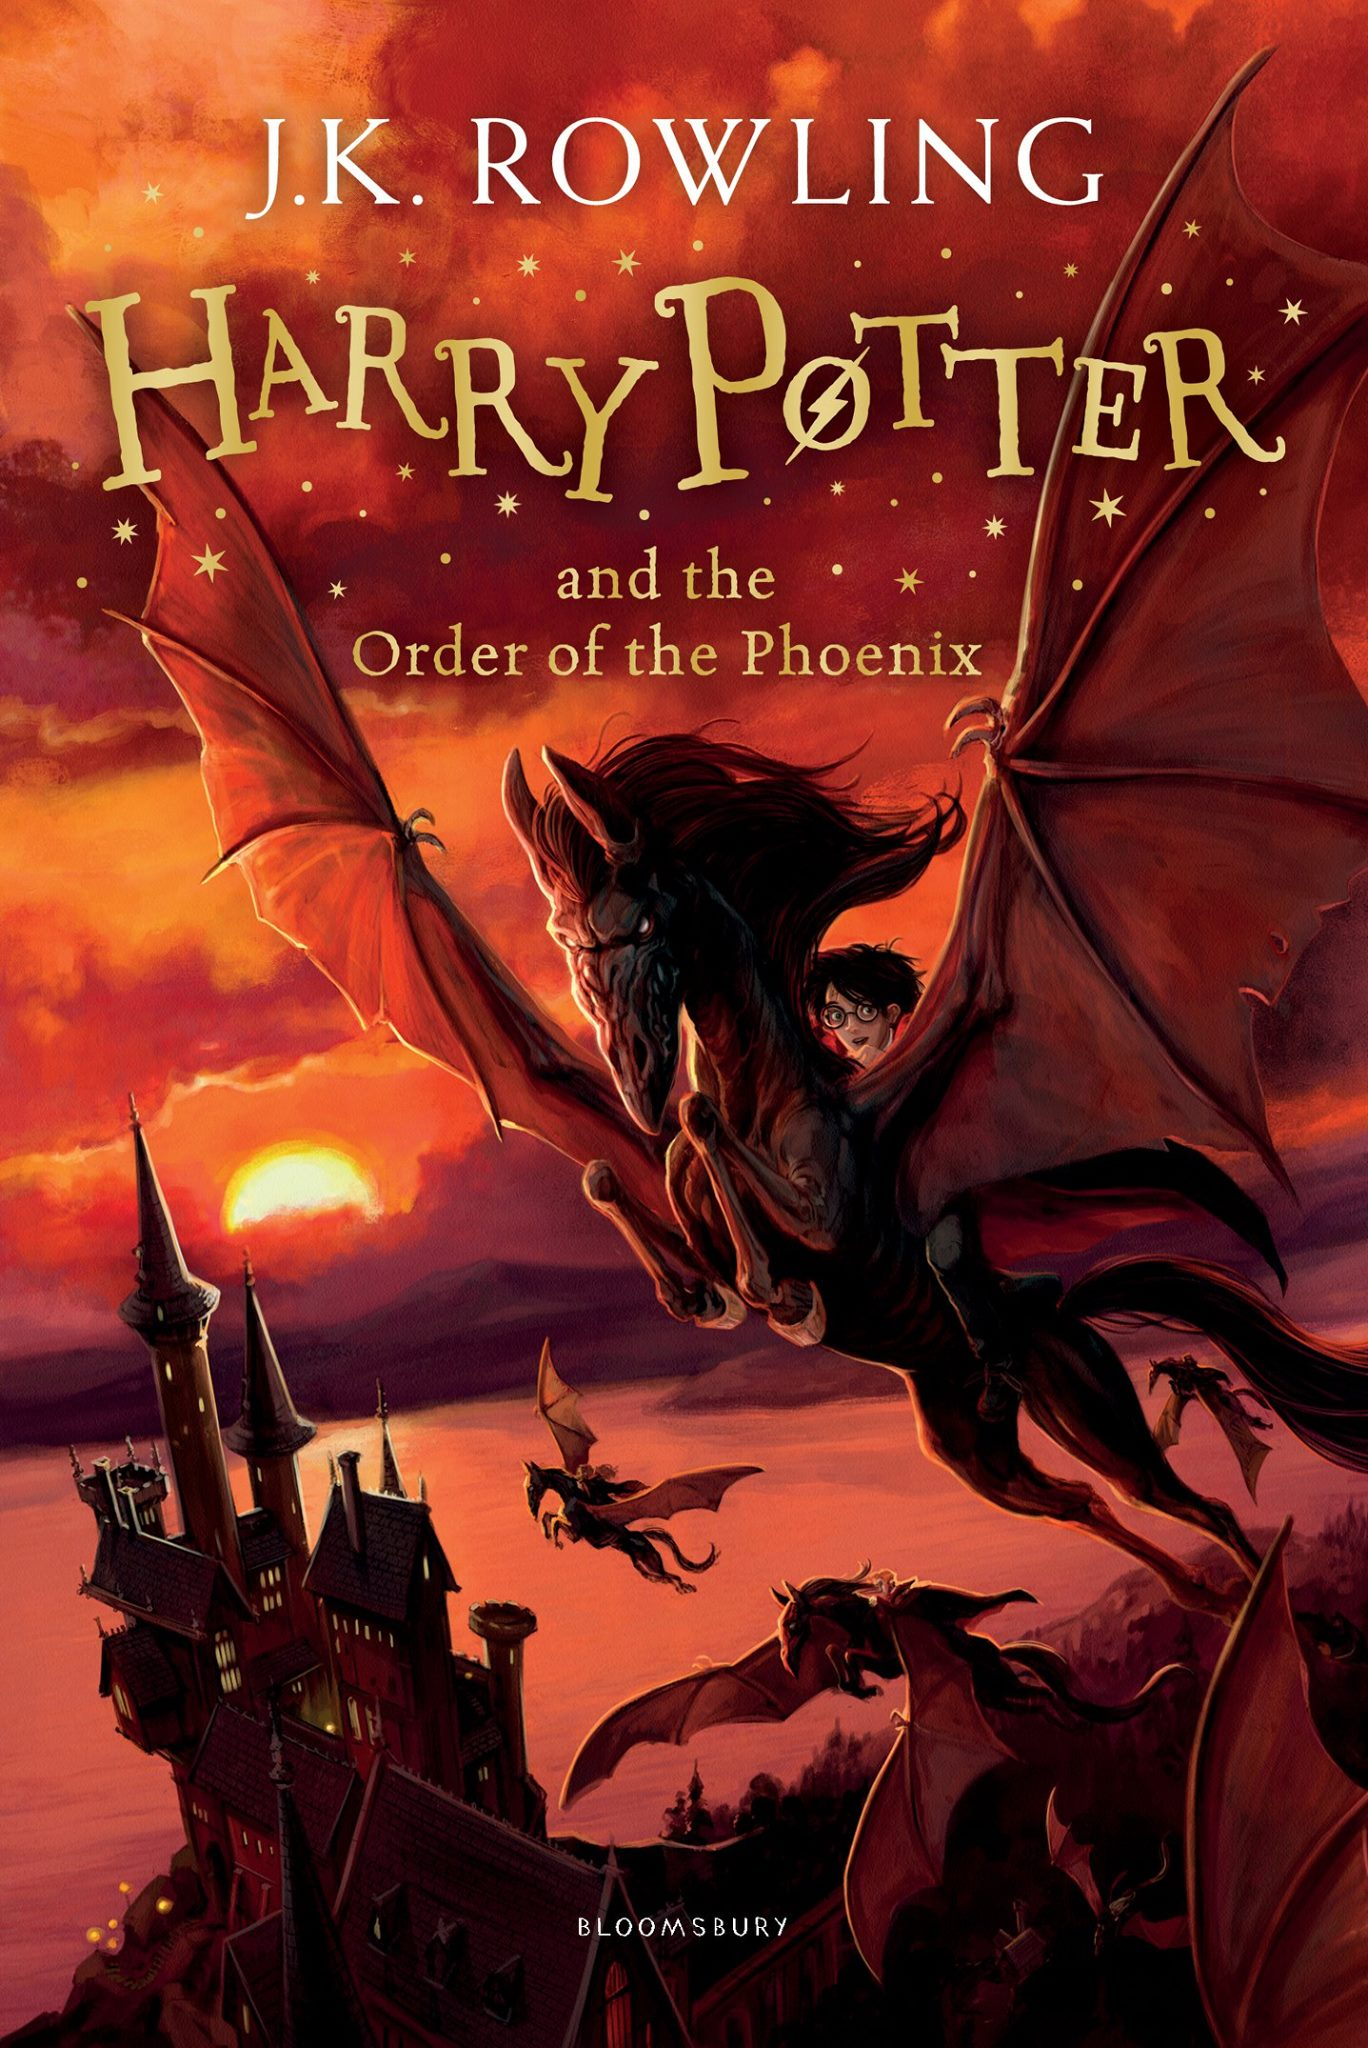 Harry Potter and the Order of the Phoenix | Harry Potter Wiki